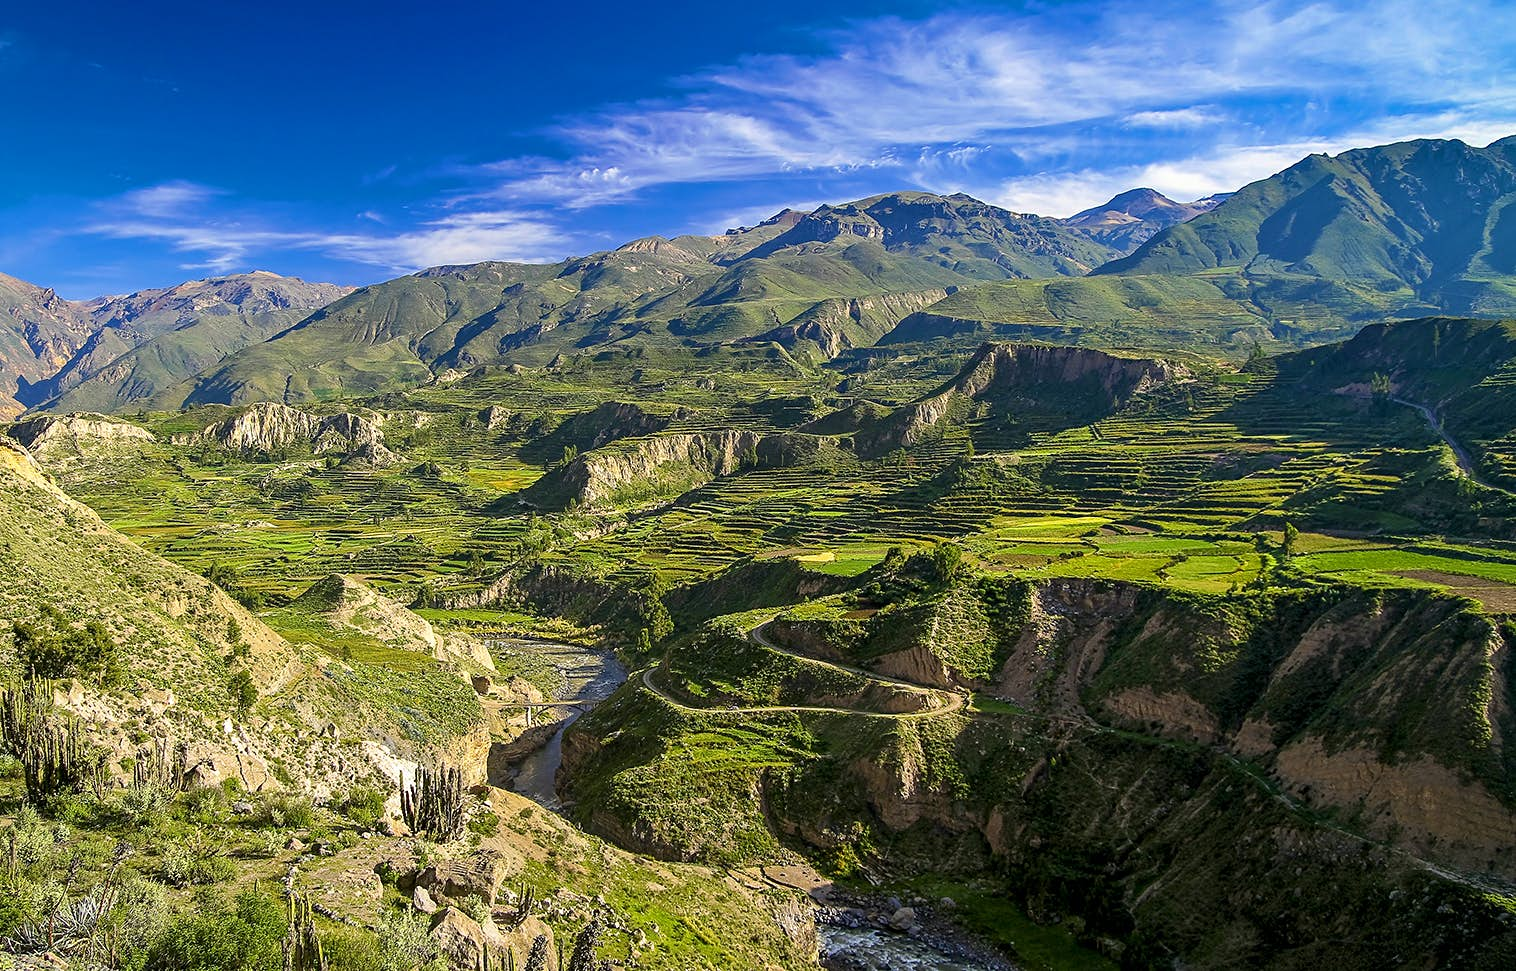 The view from one end of the Colca Canyon floor, covered in green crass and Inca-era farming terraces